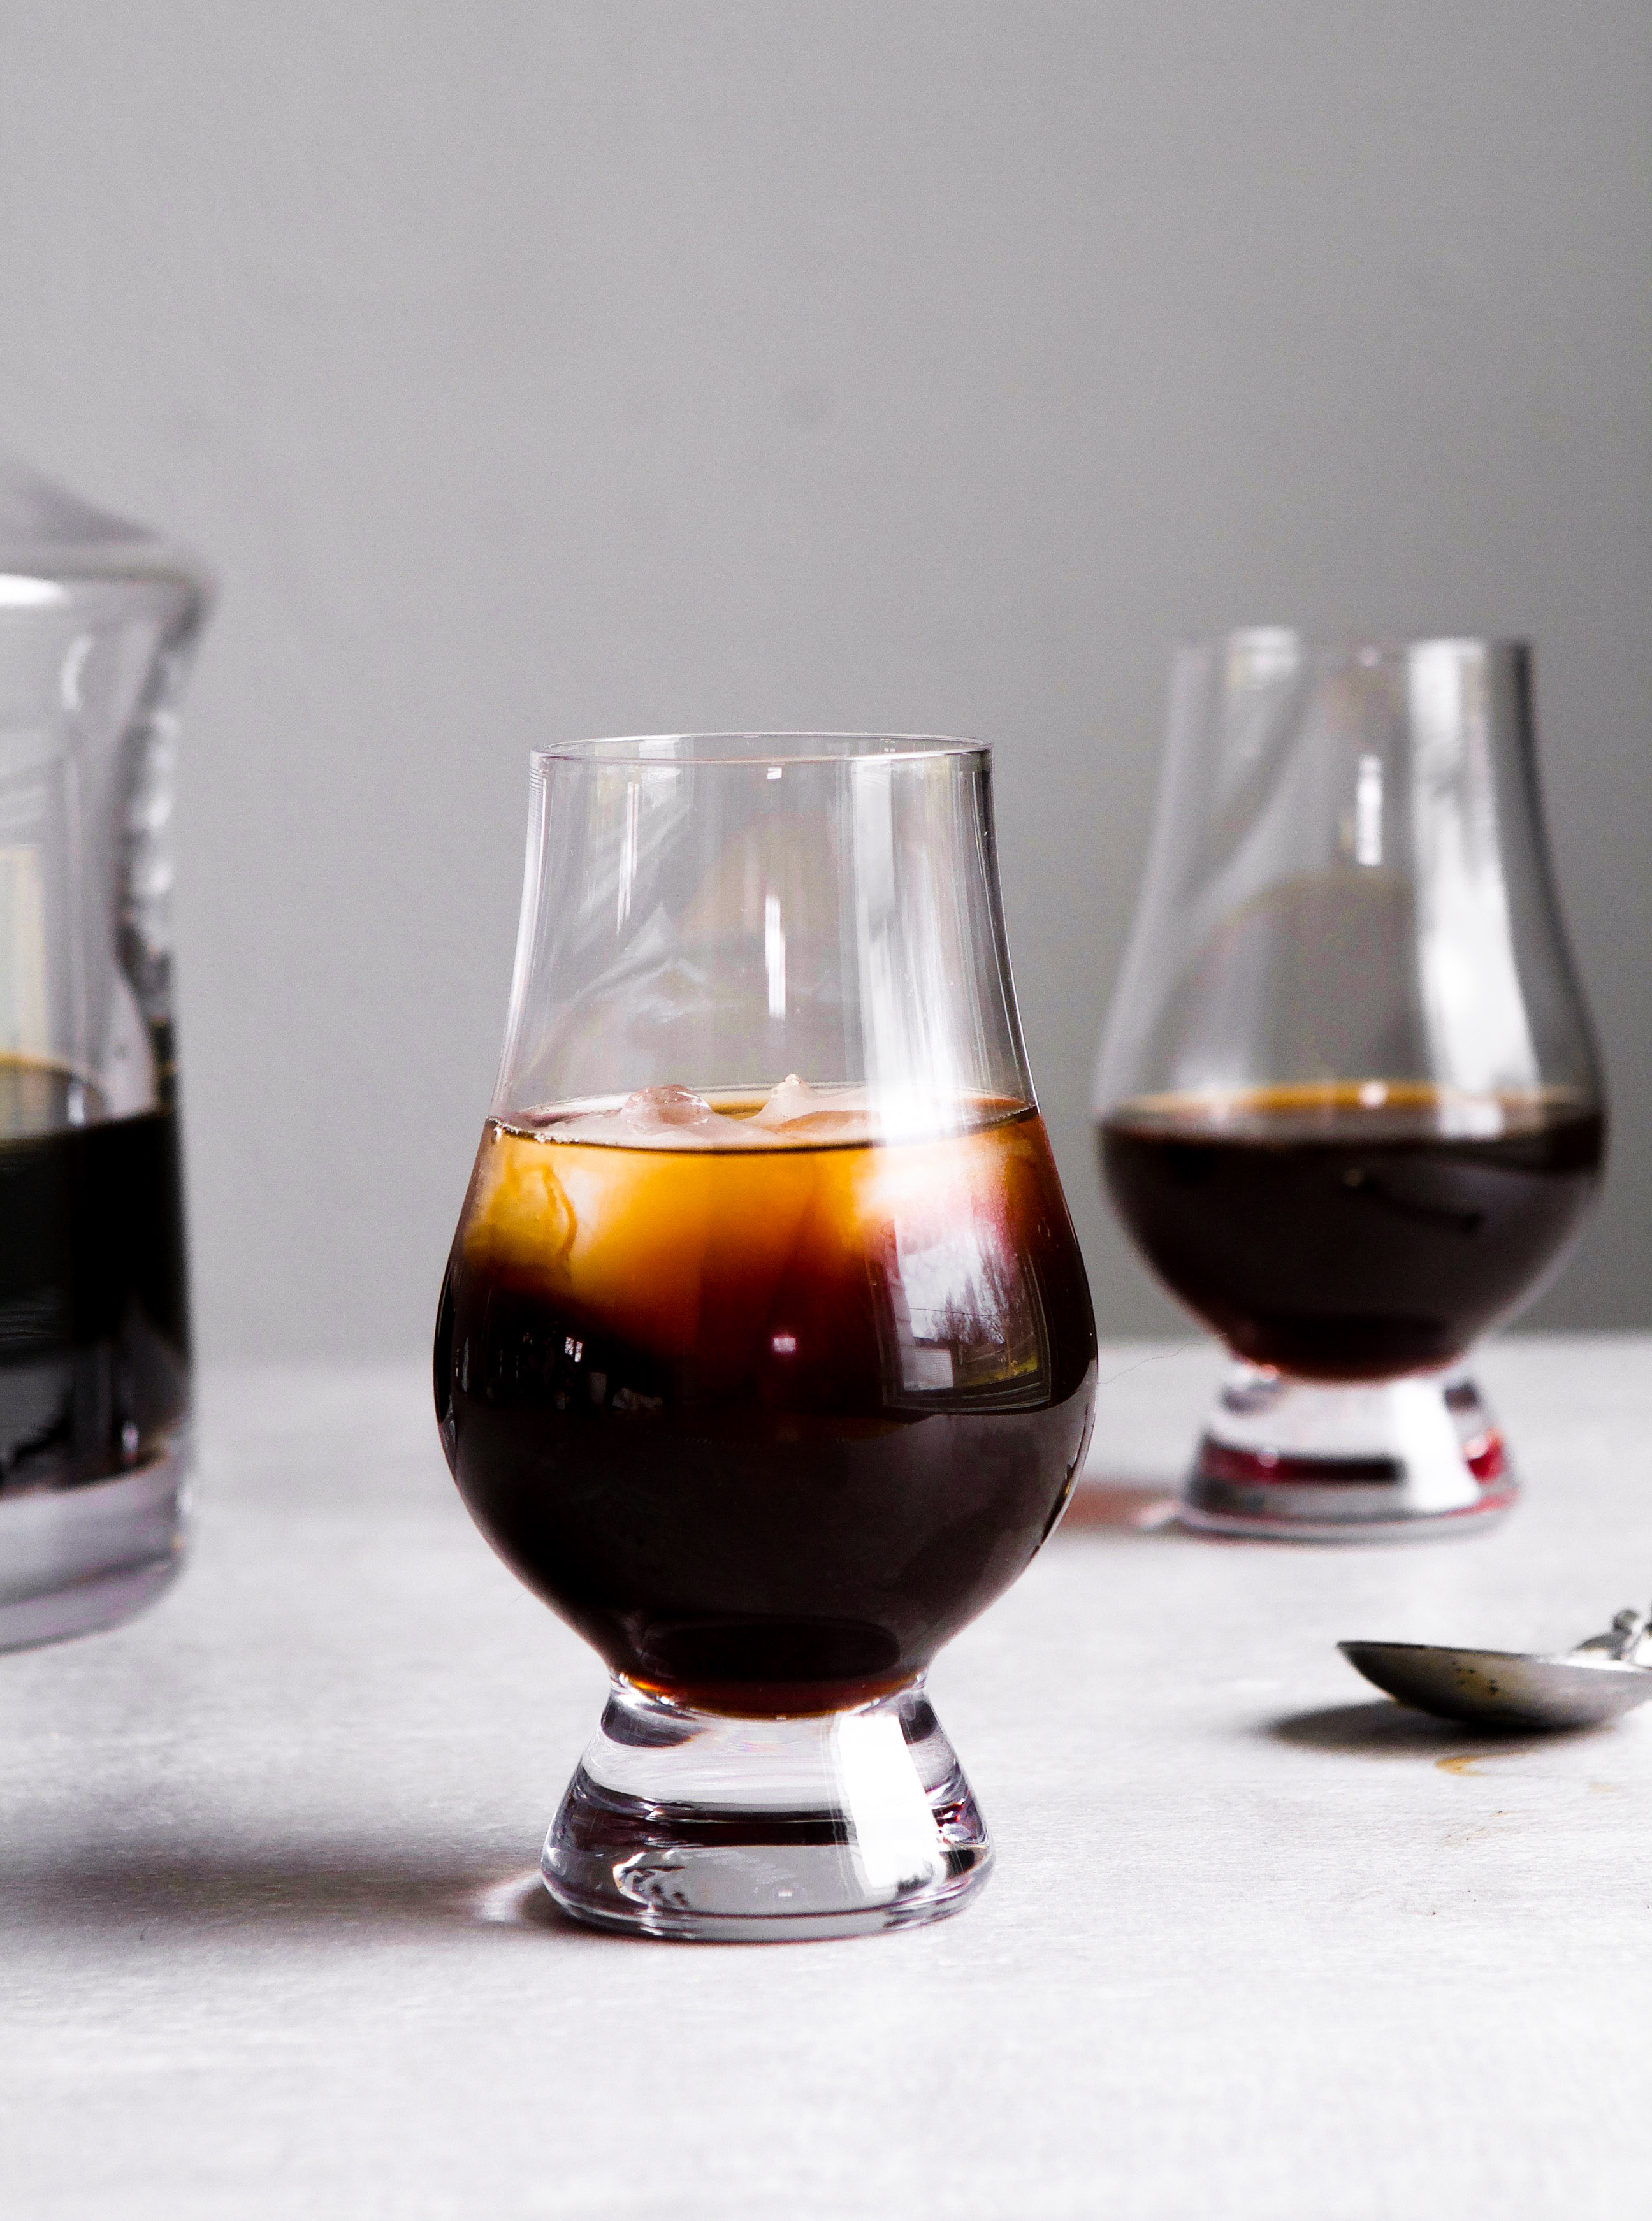 Incredibly simple to make, this Fig Infused Bourbon packs some major flavor. Delicious as is, this bourbon also makes a great addition to many winter drinks and pairs well with anything vanilla. | Zestful Kitchen